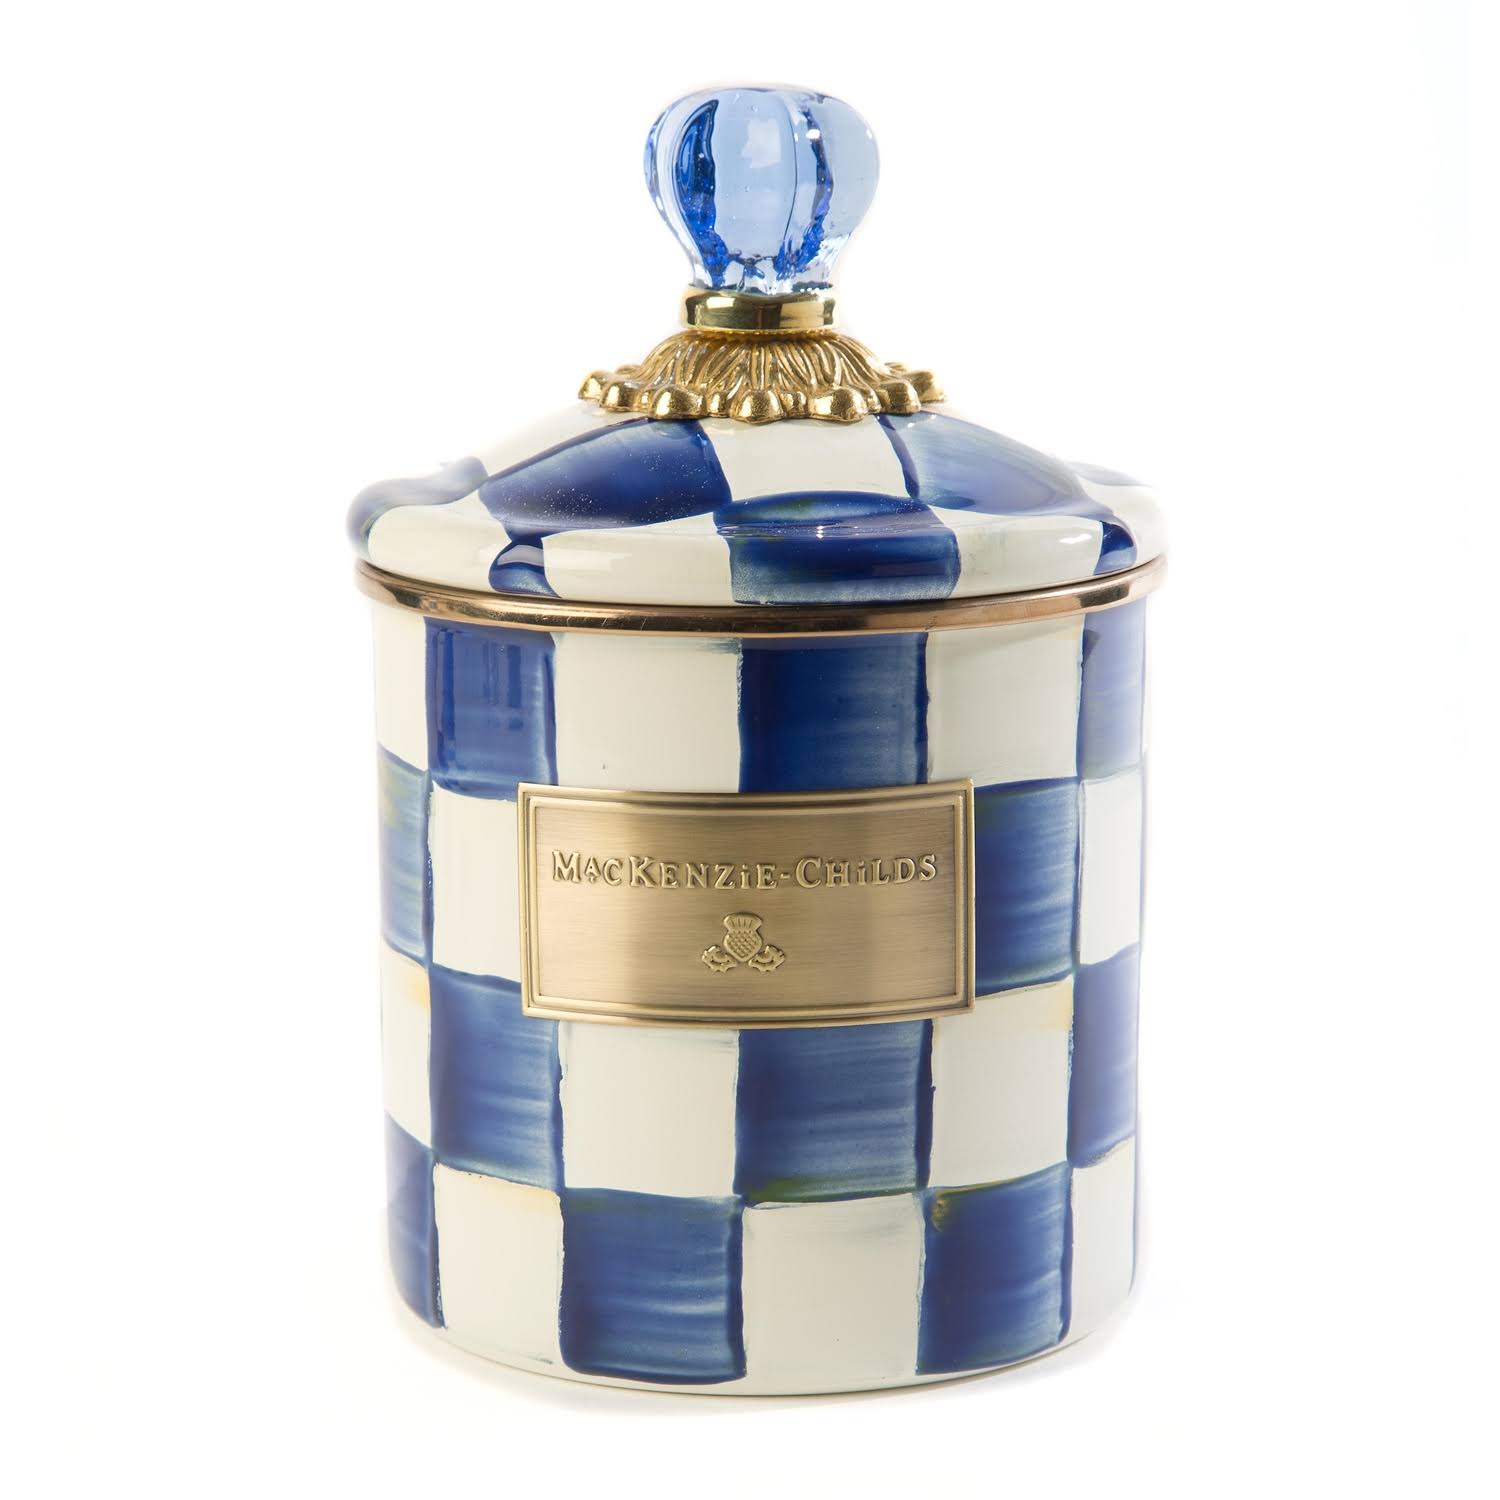 MacKenzie-Childs Canister - Royal Check, Small